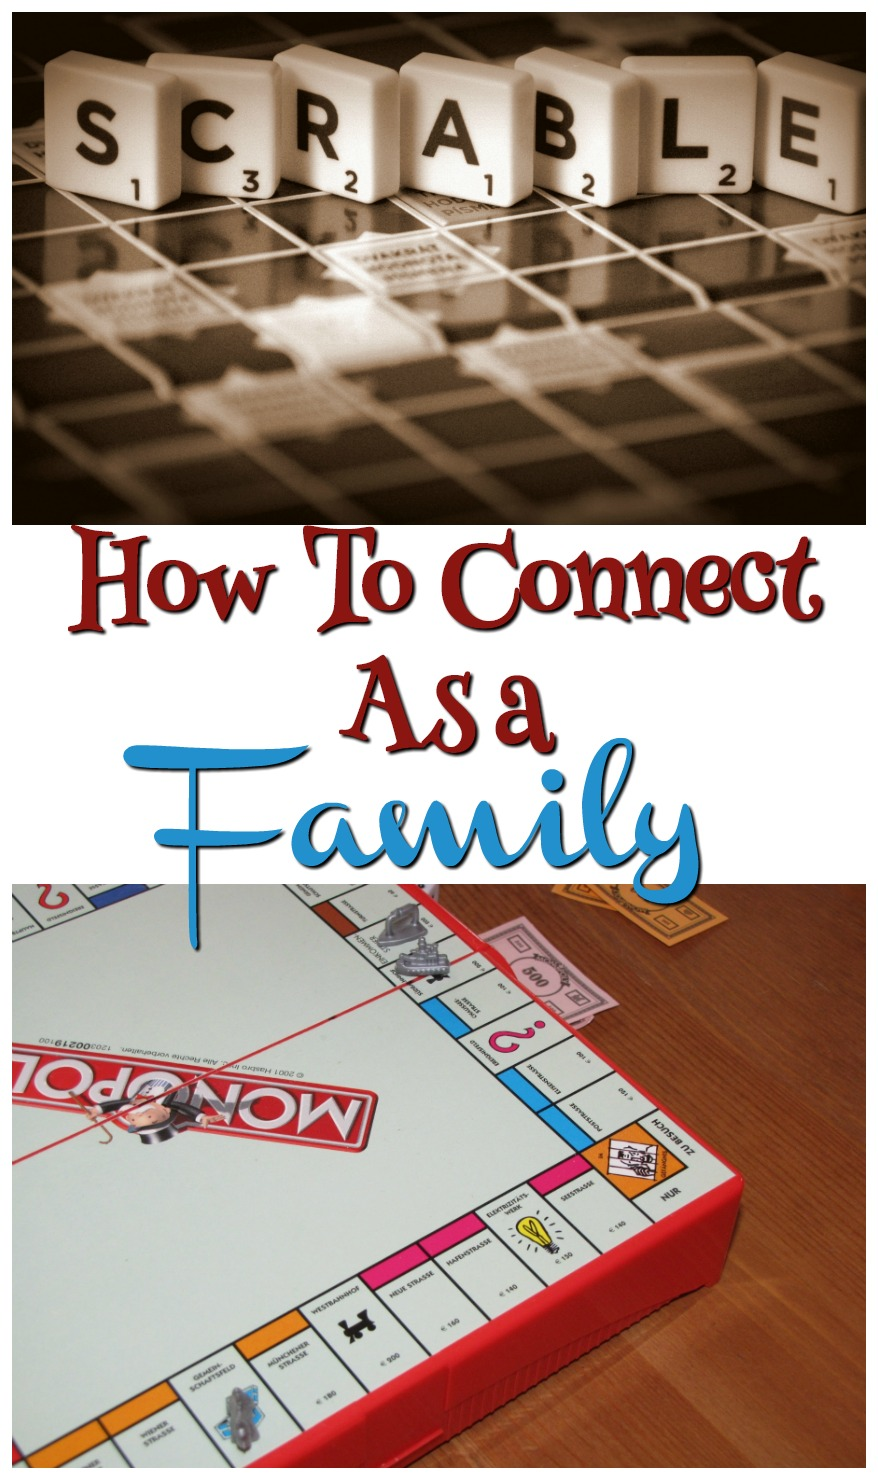 How To Connect As A Family